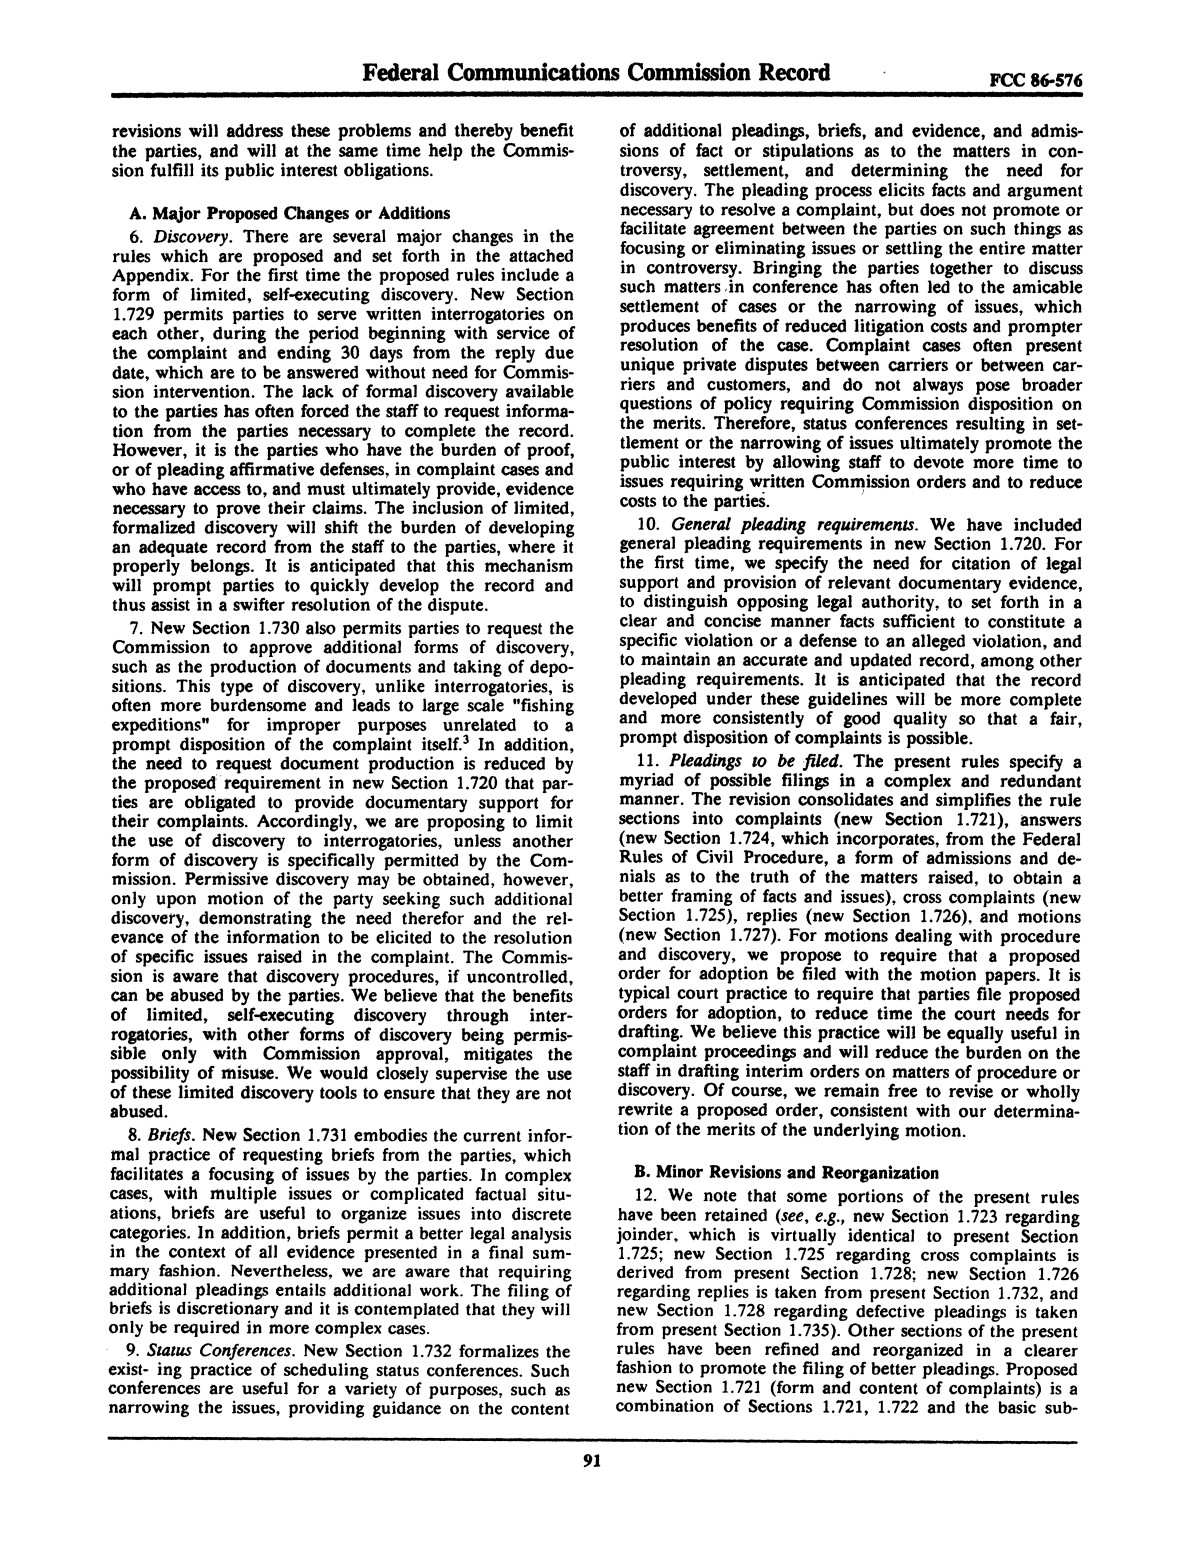 FCC Record, Volume 2, No. 1, Pages 1 to 409, January 5 - January 16, 1987                                                                                                      91